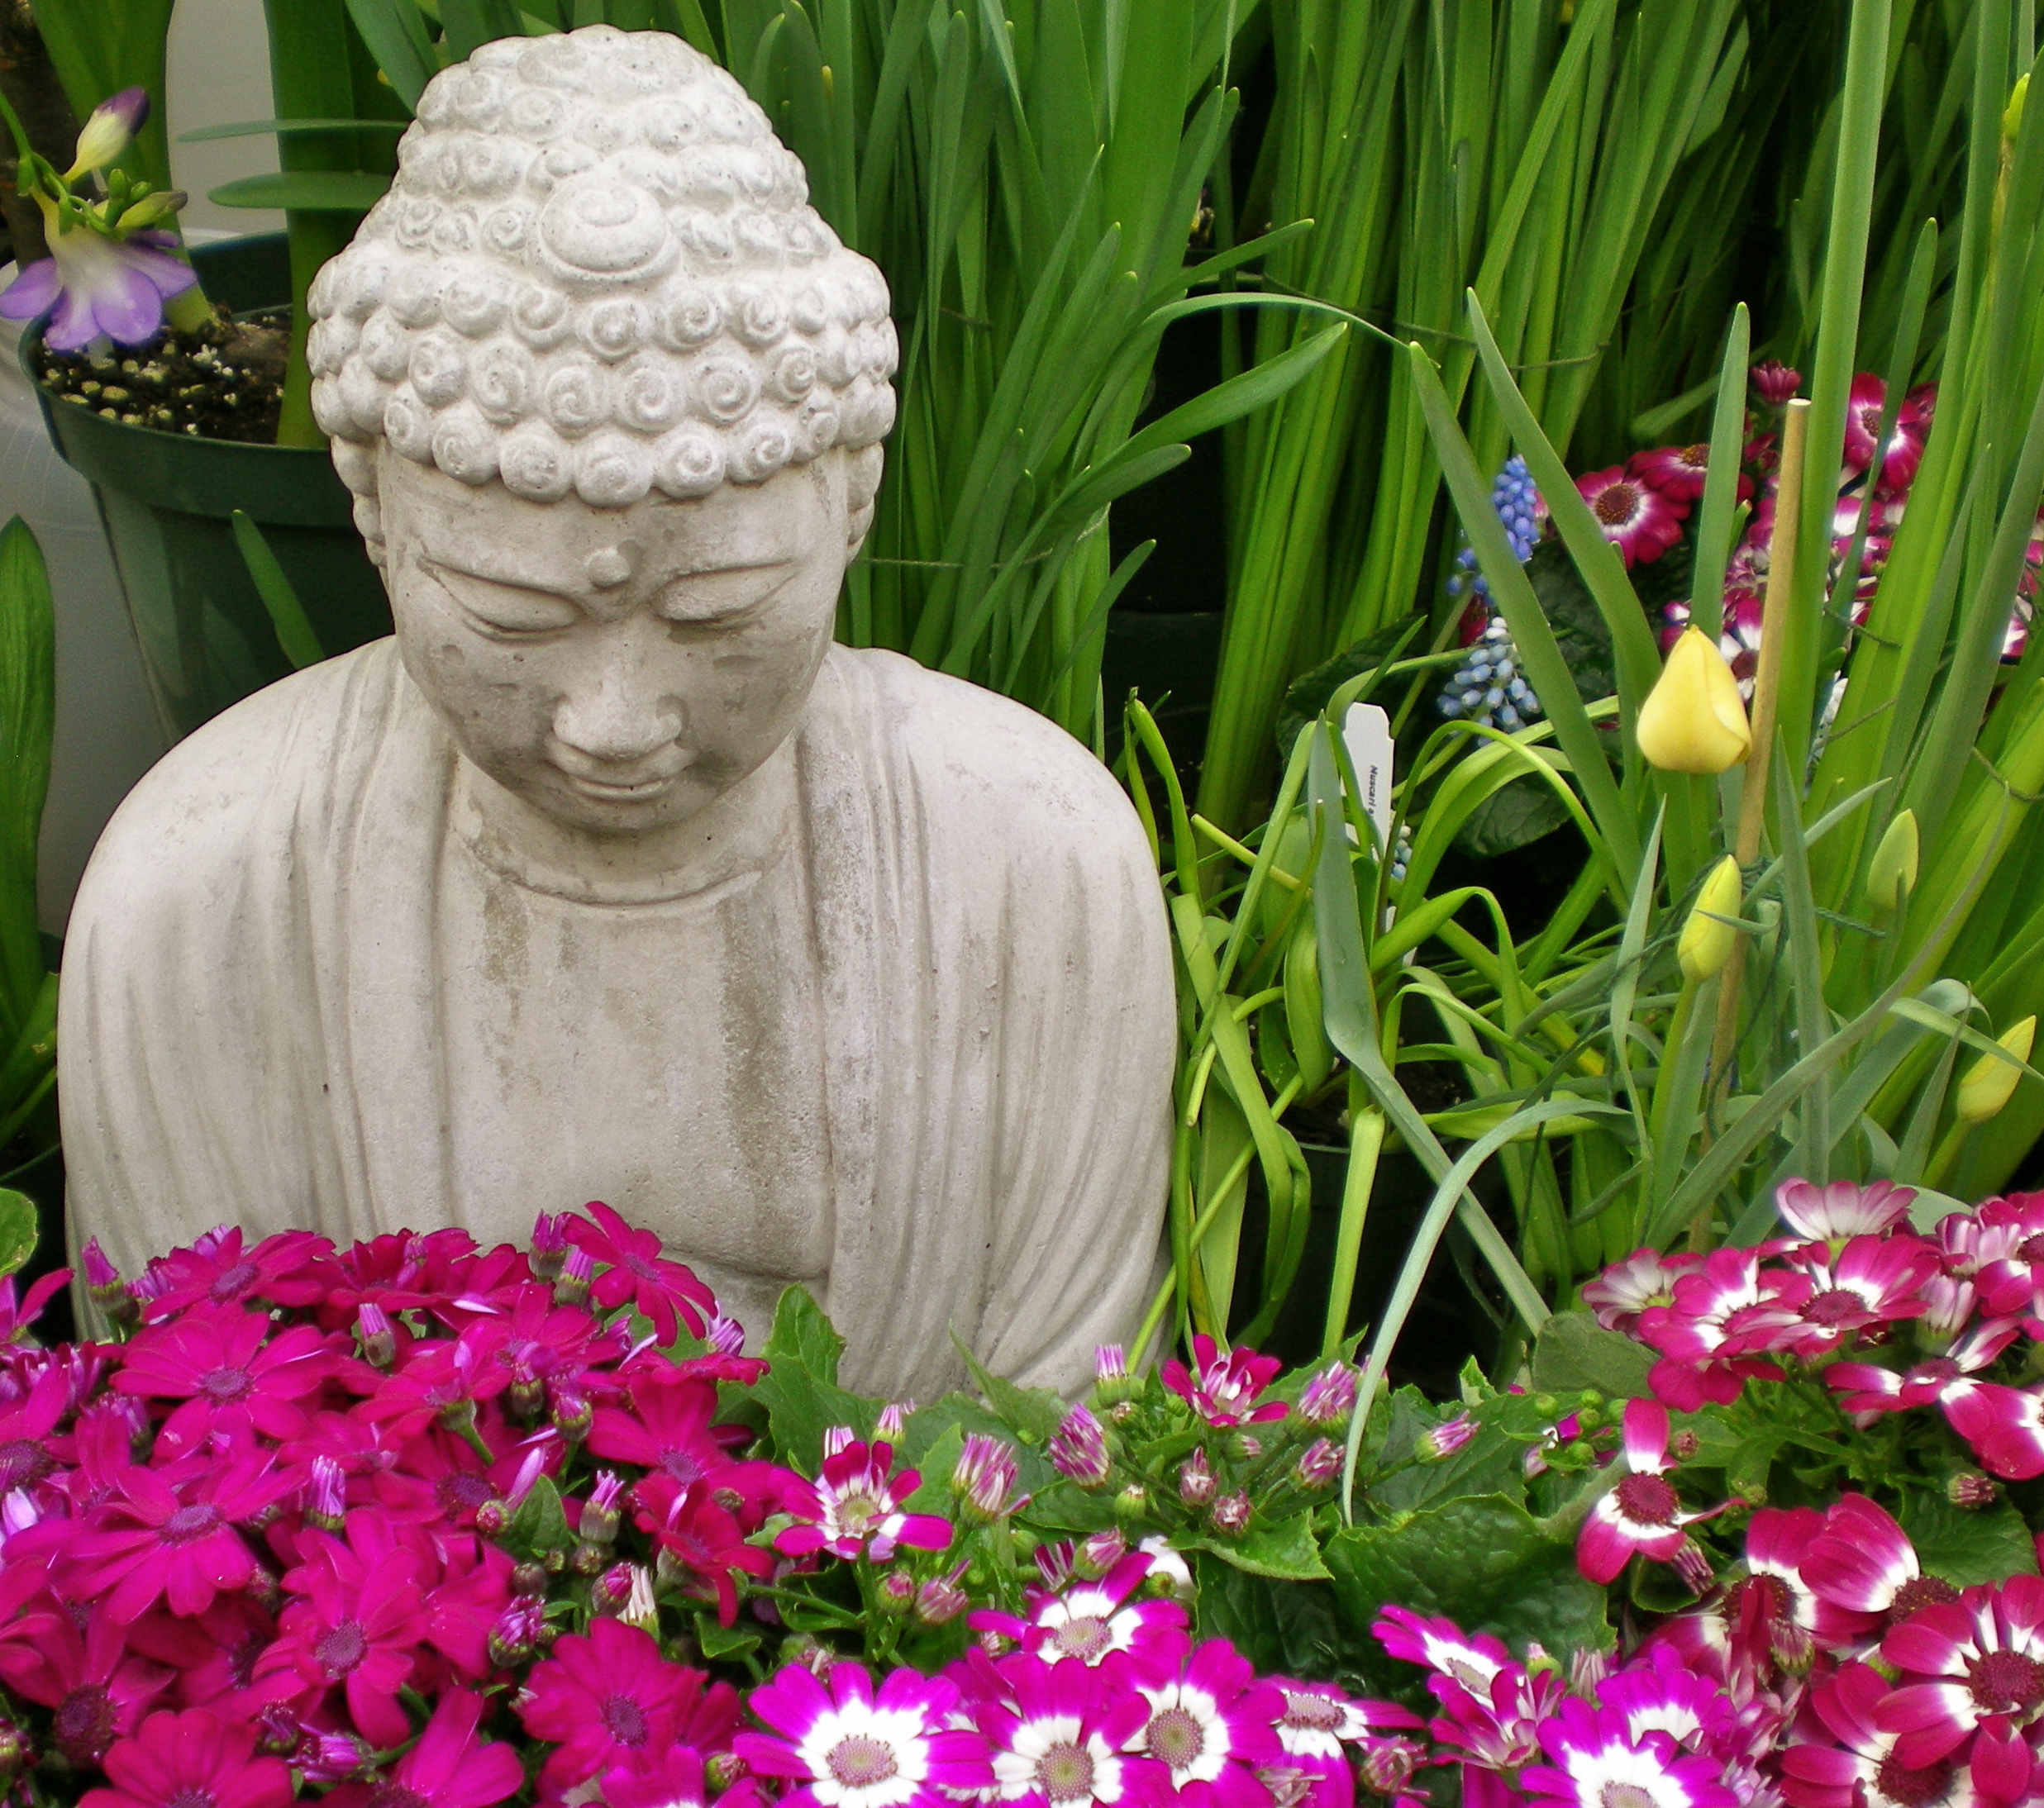 Case study western massachusetts bungalow kdz designs interior - Buddha At Smith College Greenhouse Kdz Designs